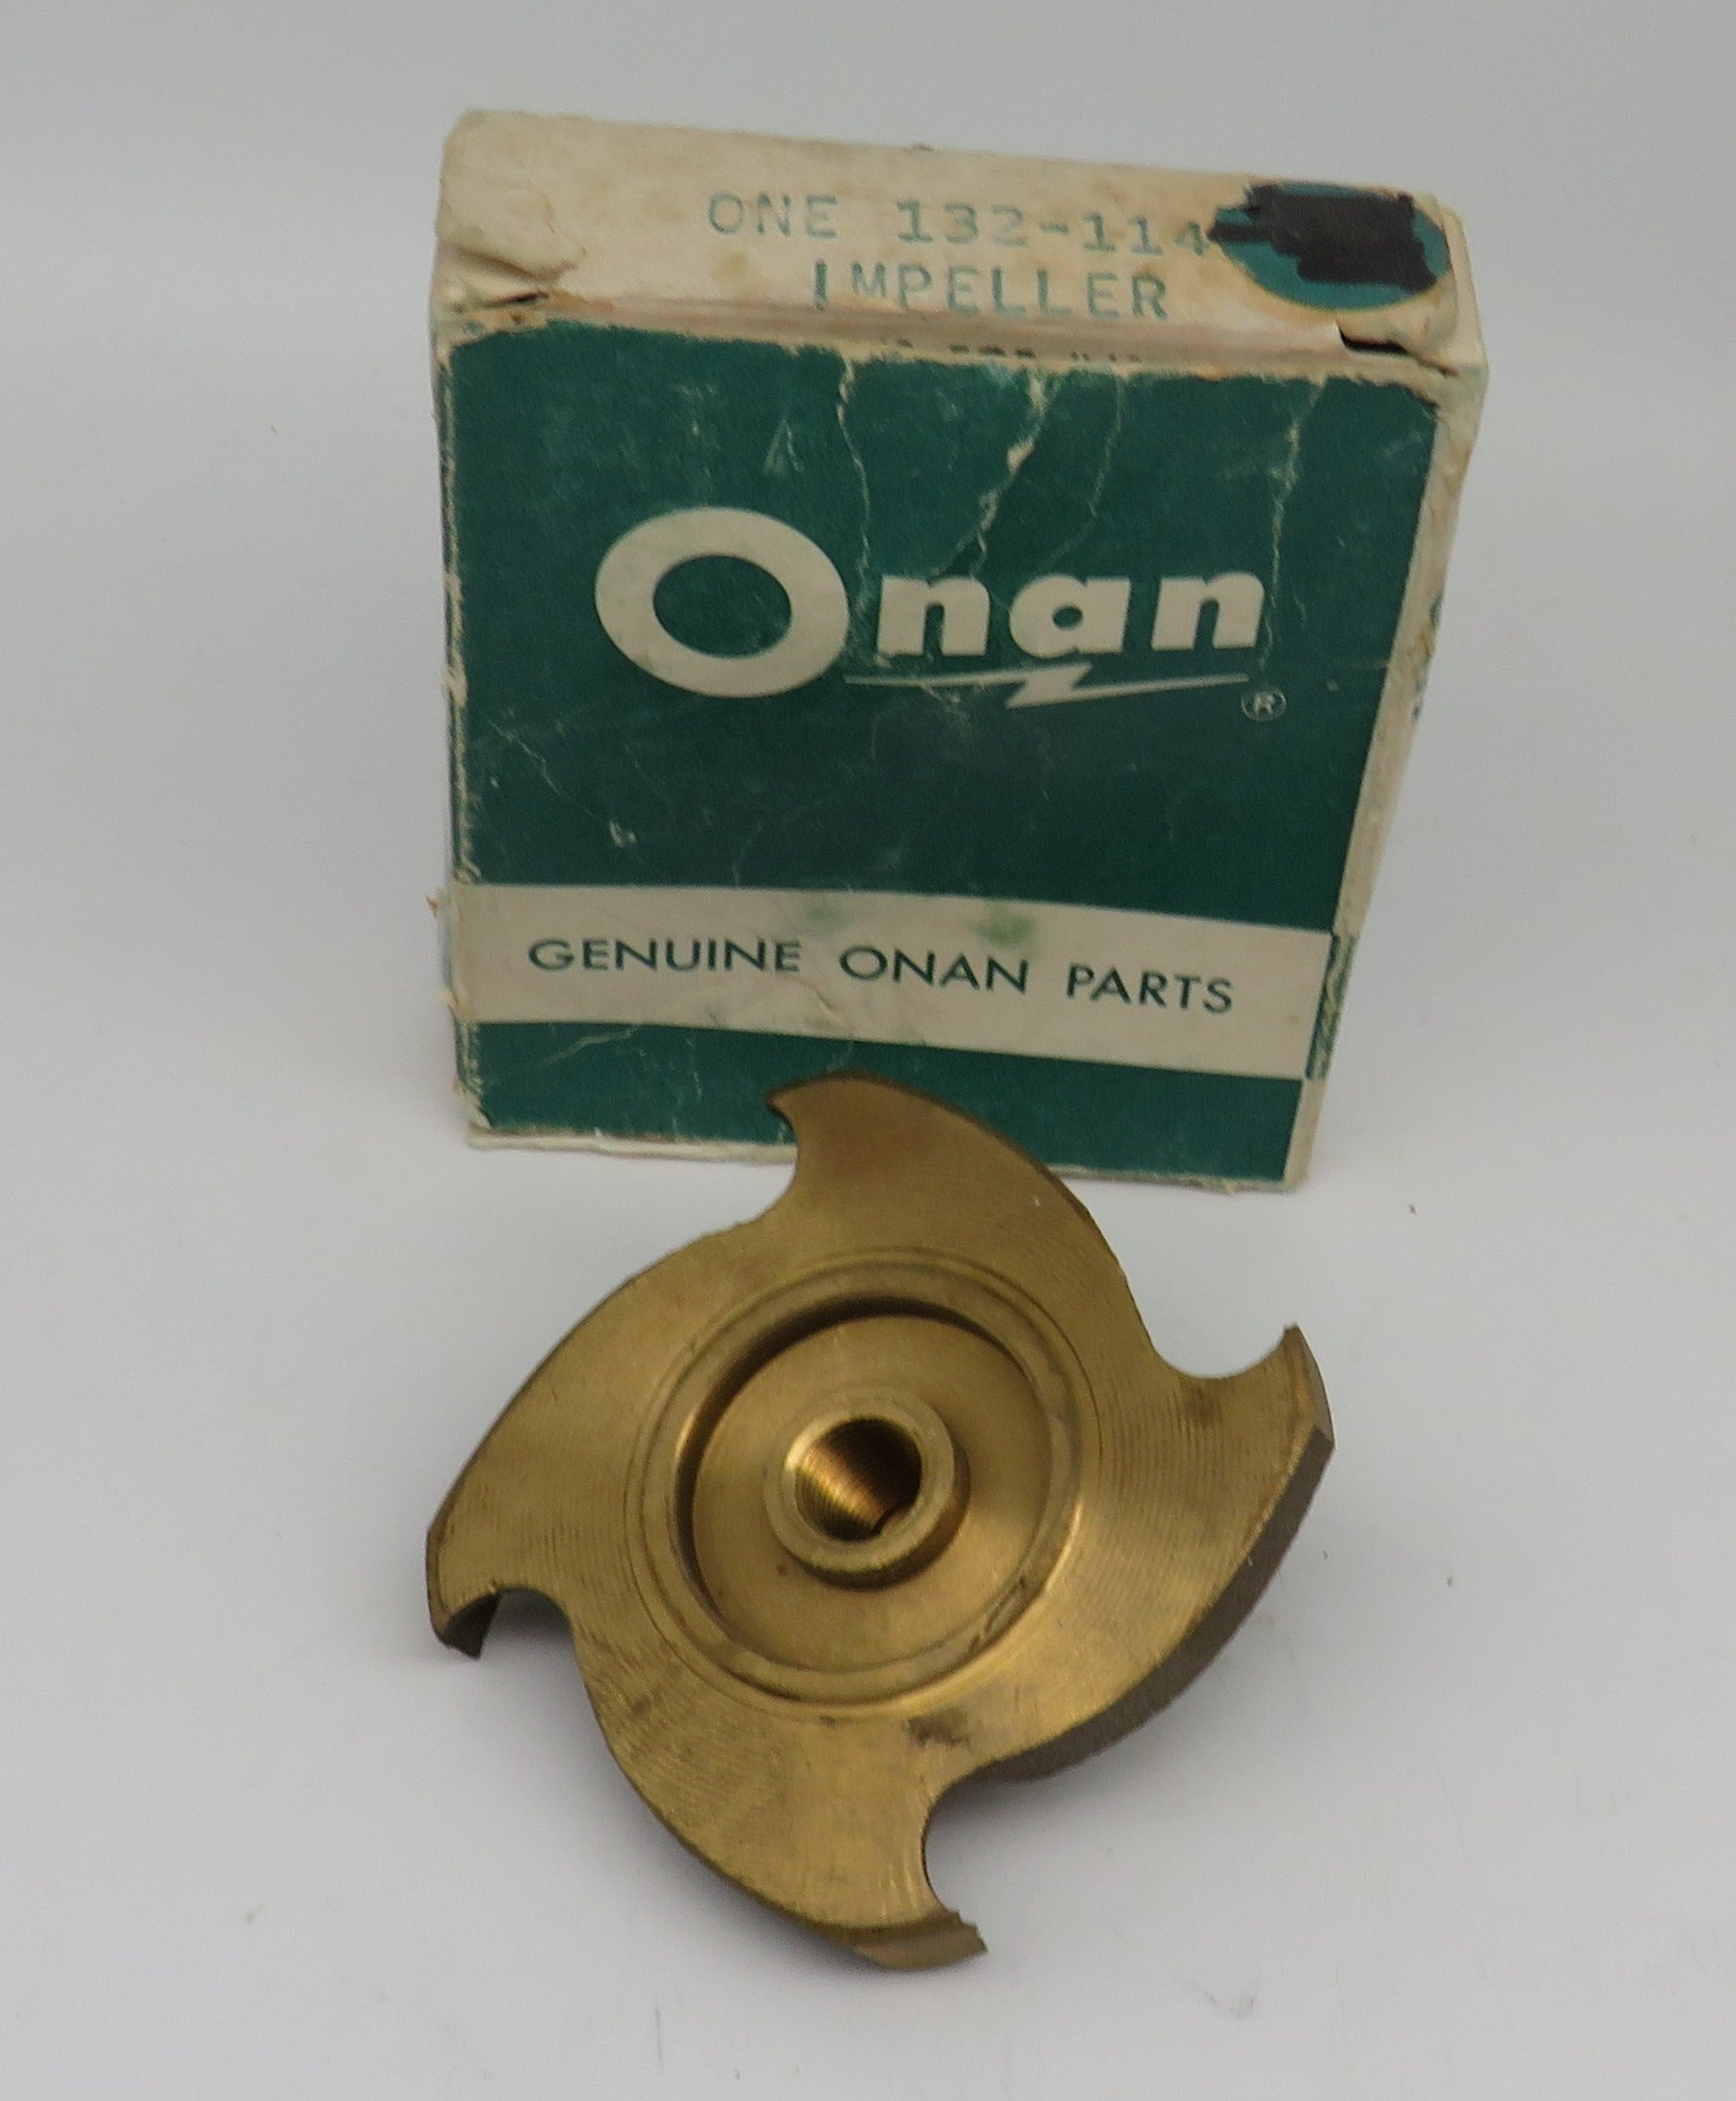 132-0114 Onan Impeller Centrifugal For MDJA w/Heat Exchangers